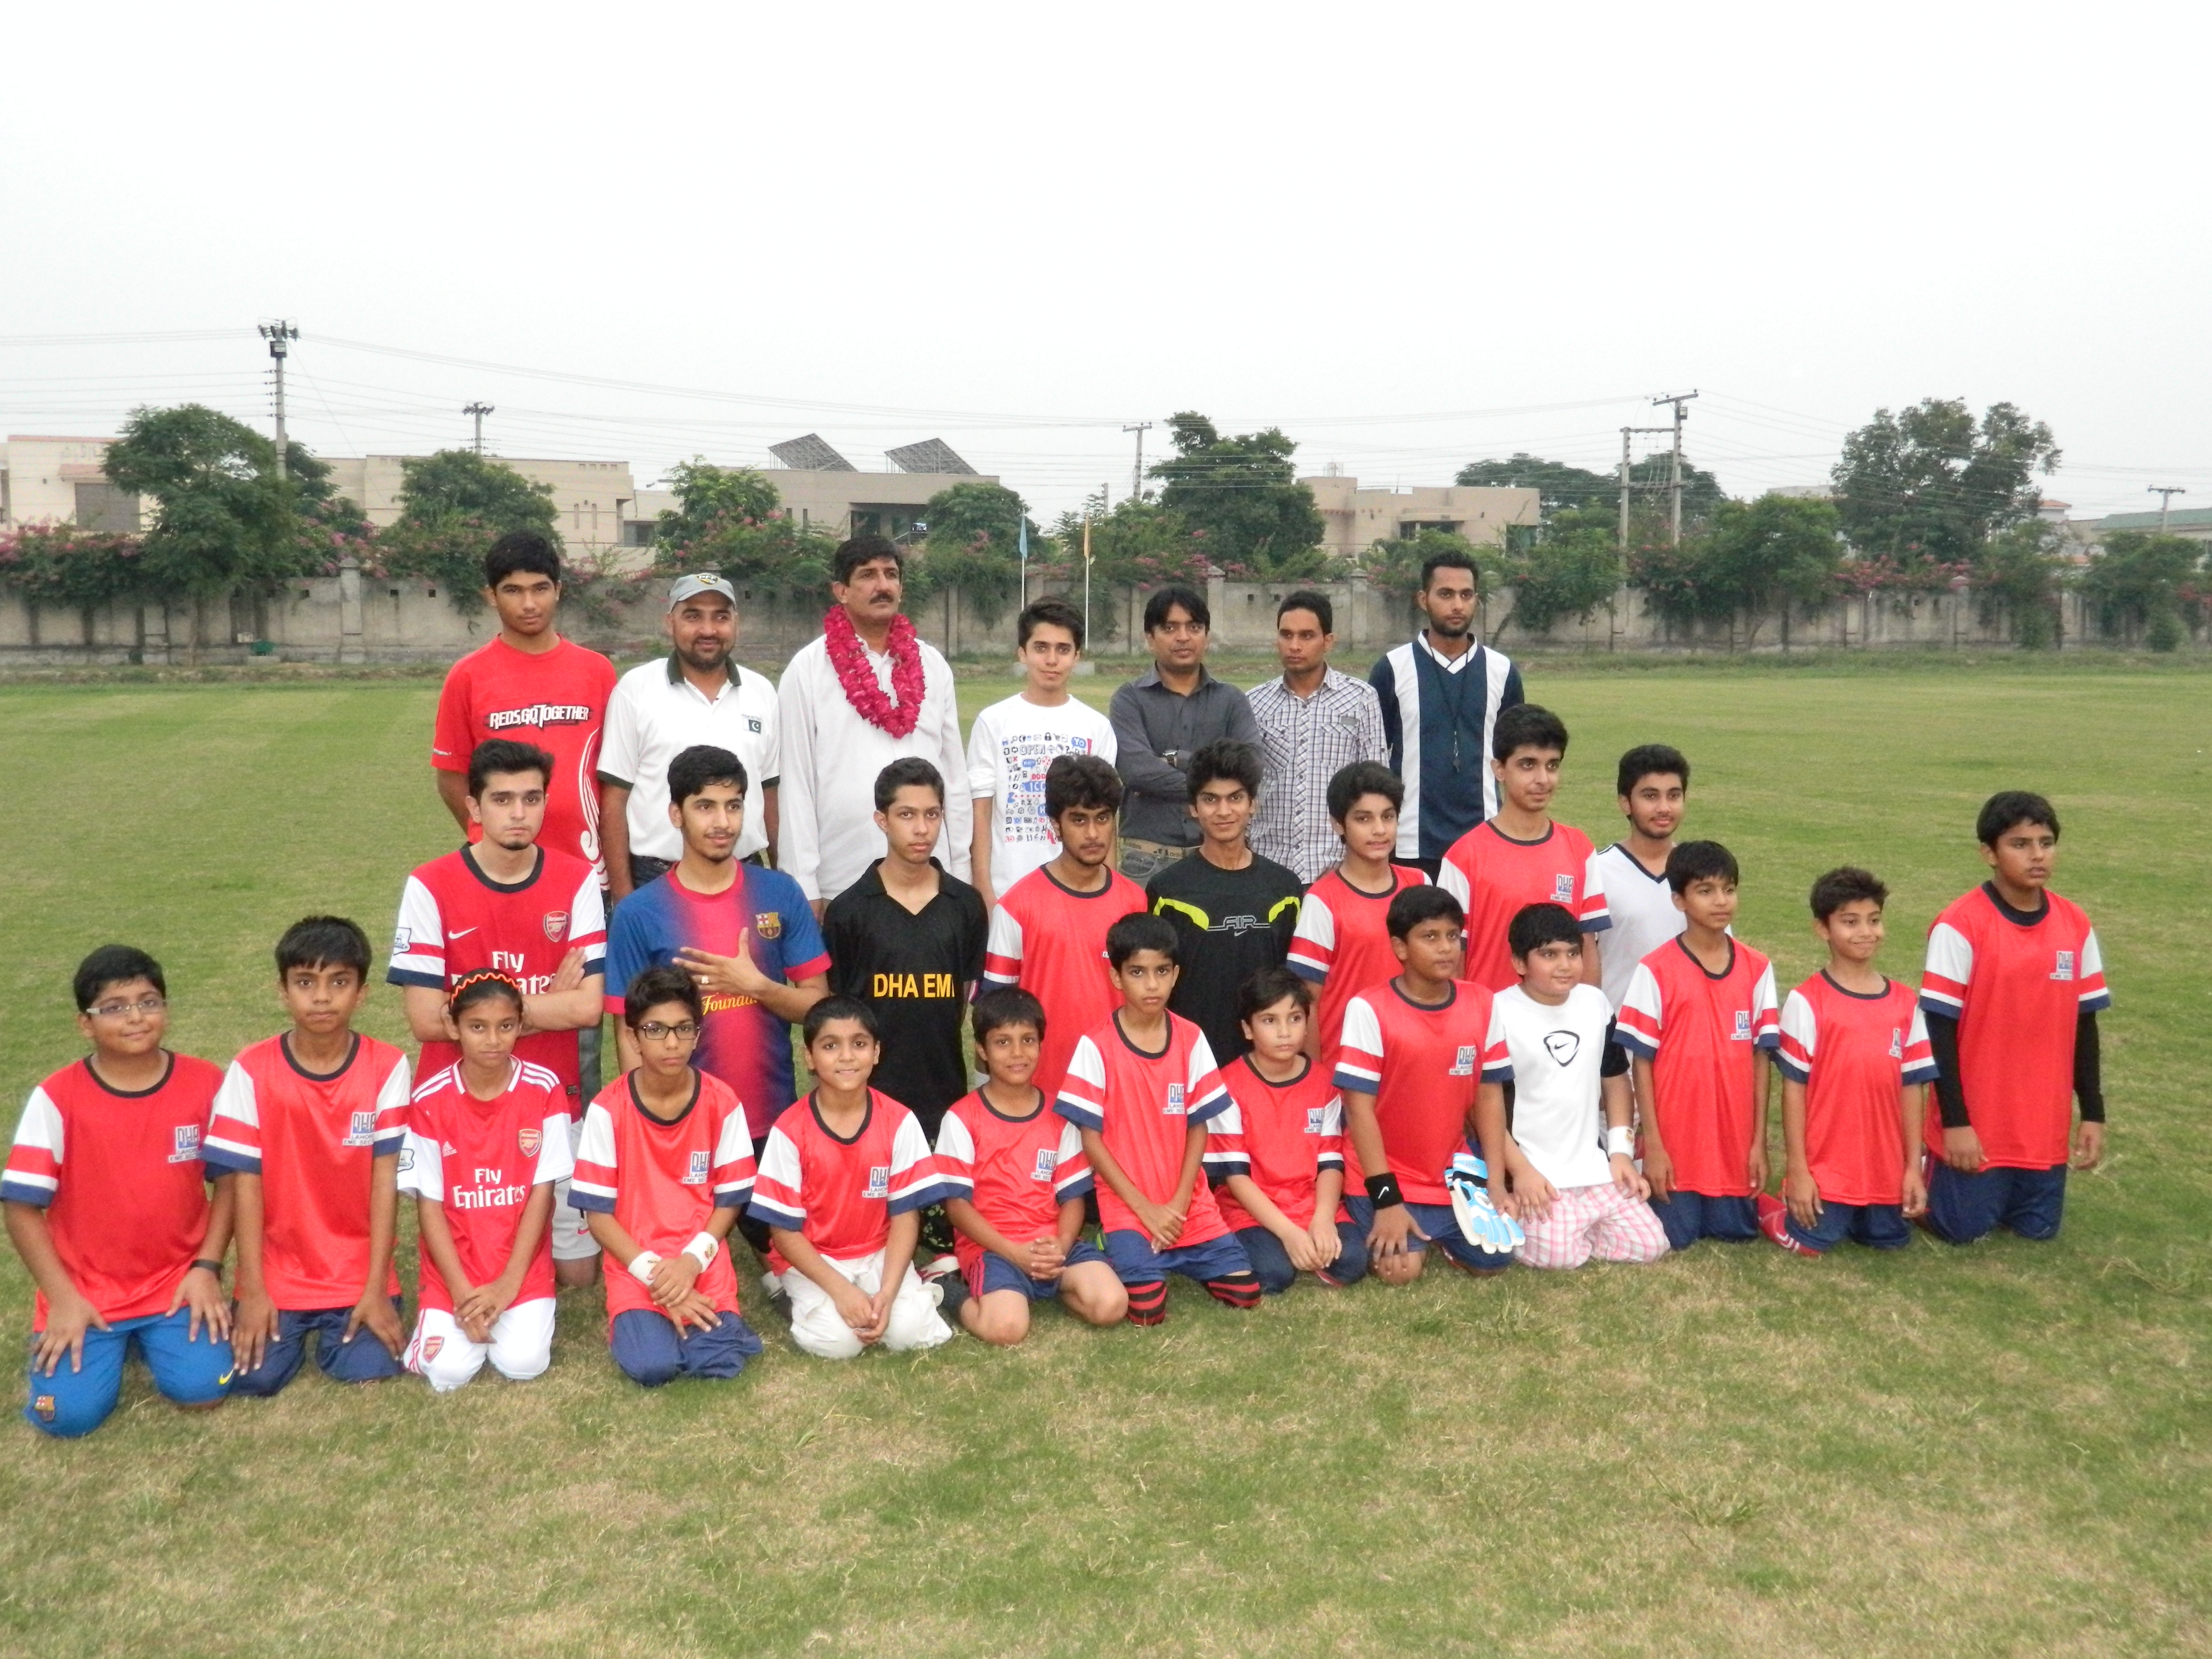 PFA visits newly launched academy